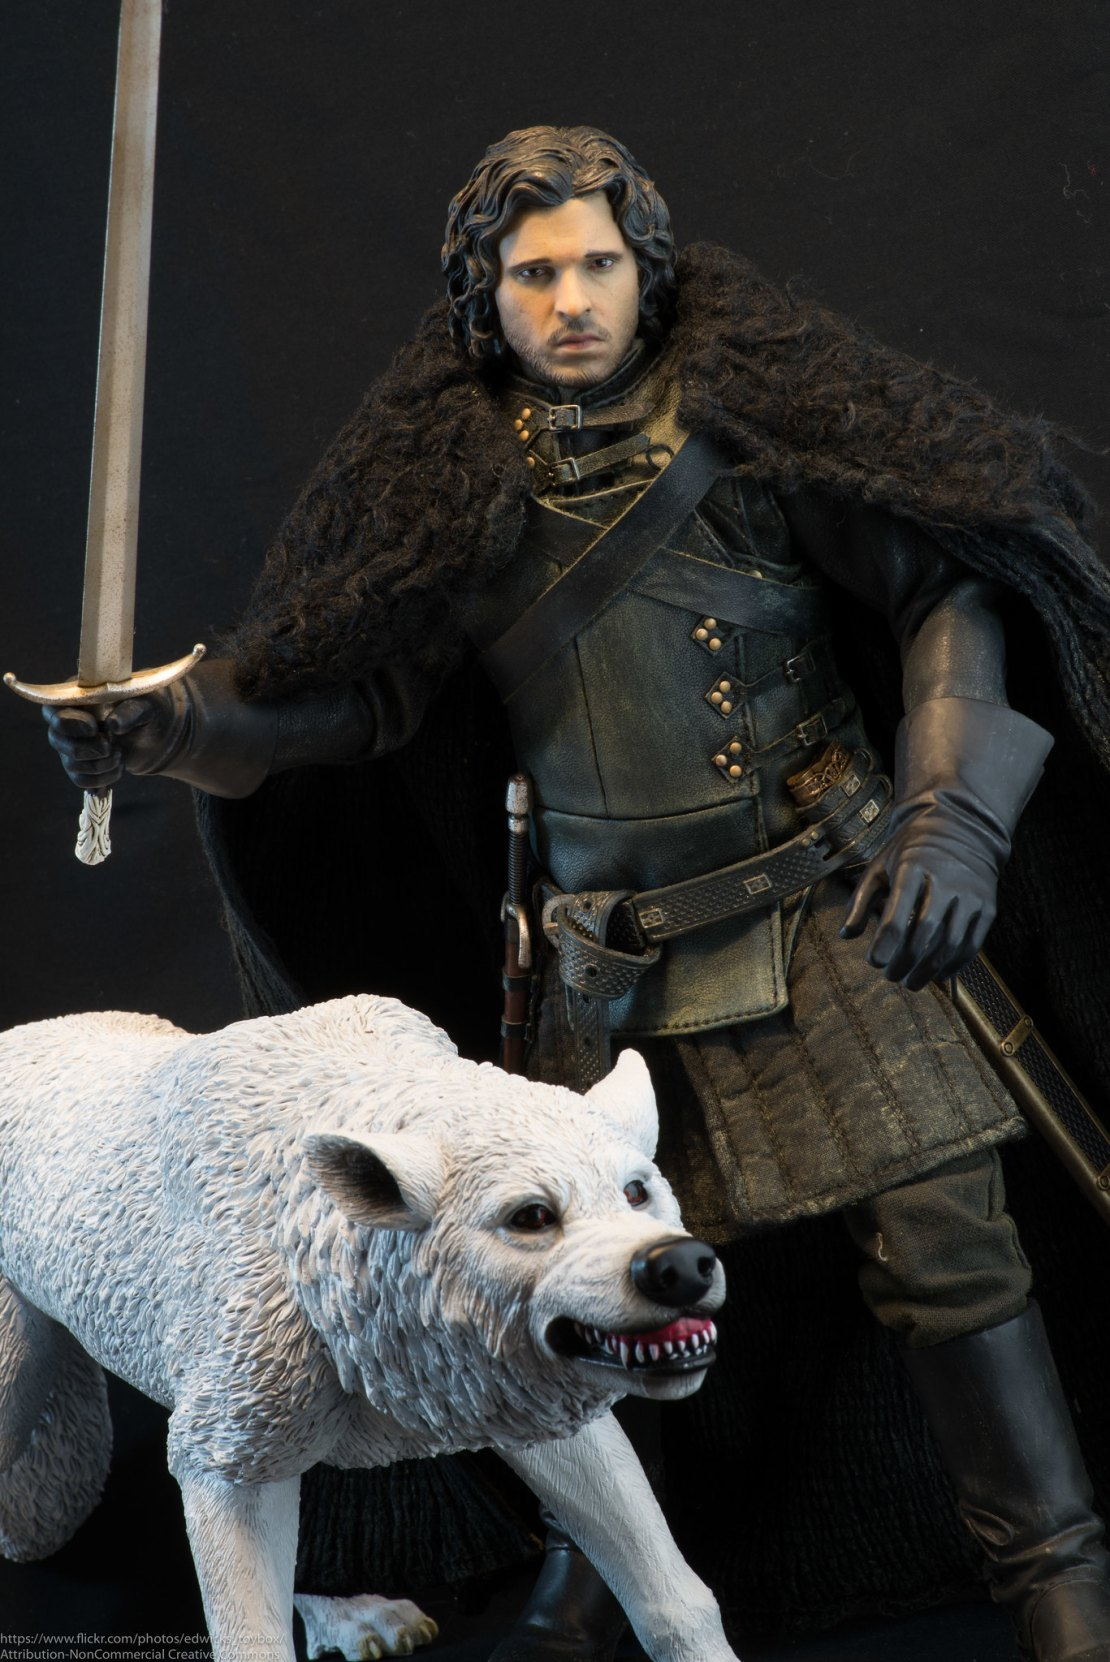 Jon Snow from Game of Thrones with his dire wolf.